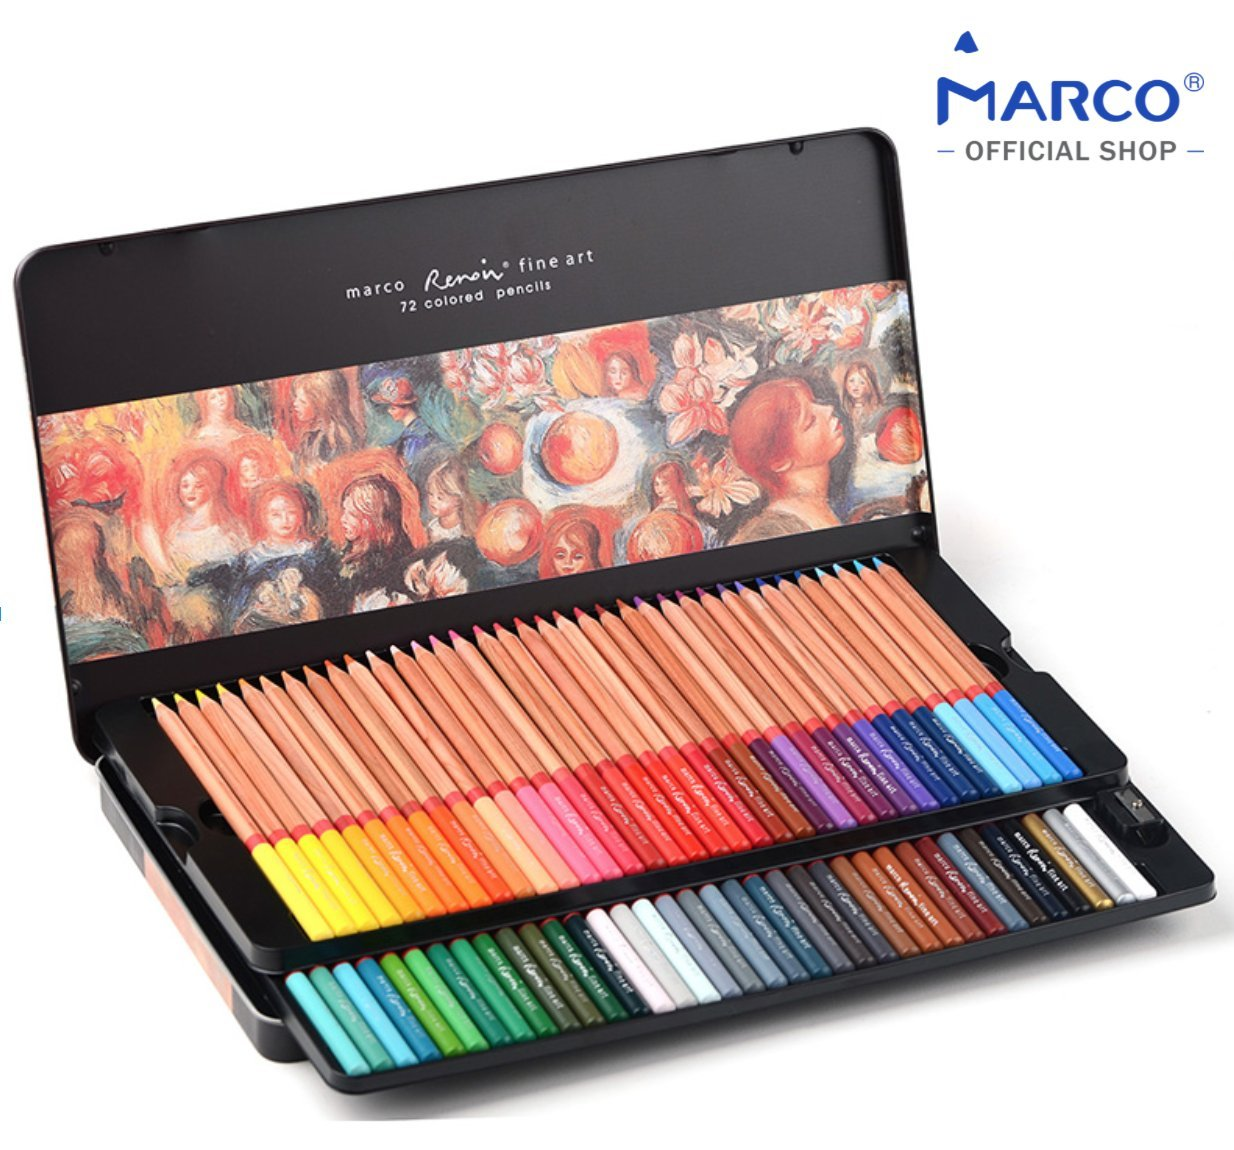 [MARCO OFFICIAL SHOP]Marco Renoir Fine Art 3100, Pack of 72 Colored Pencils, Tin Box,3.7mm Super Thick Lead, Incense Ceder Wood, Ultimate Set for Artist,Extra Protection Packaging